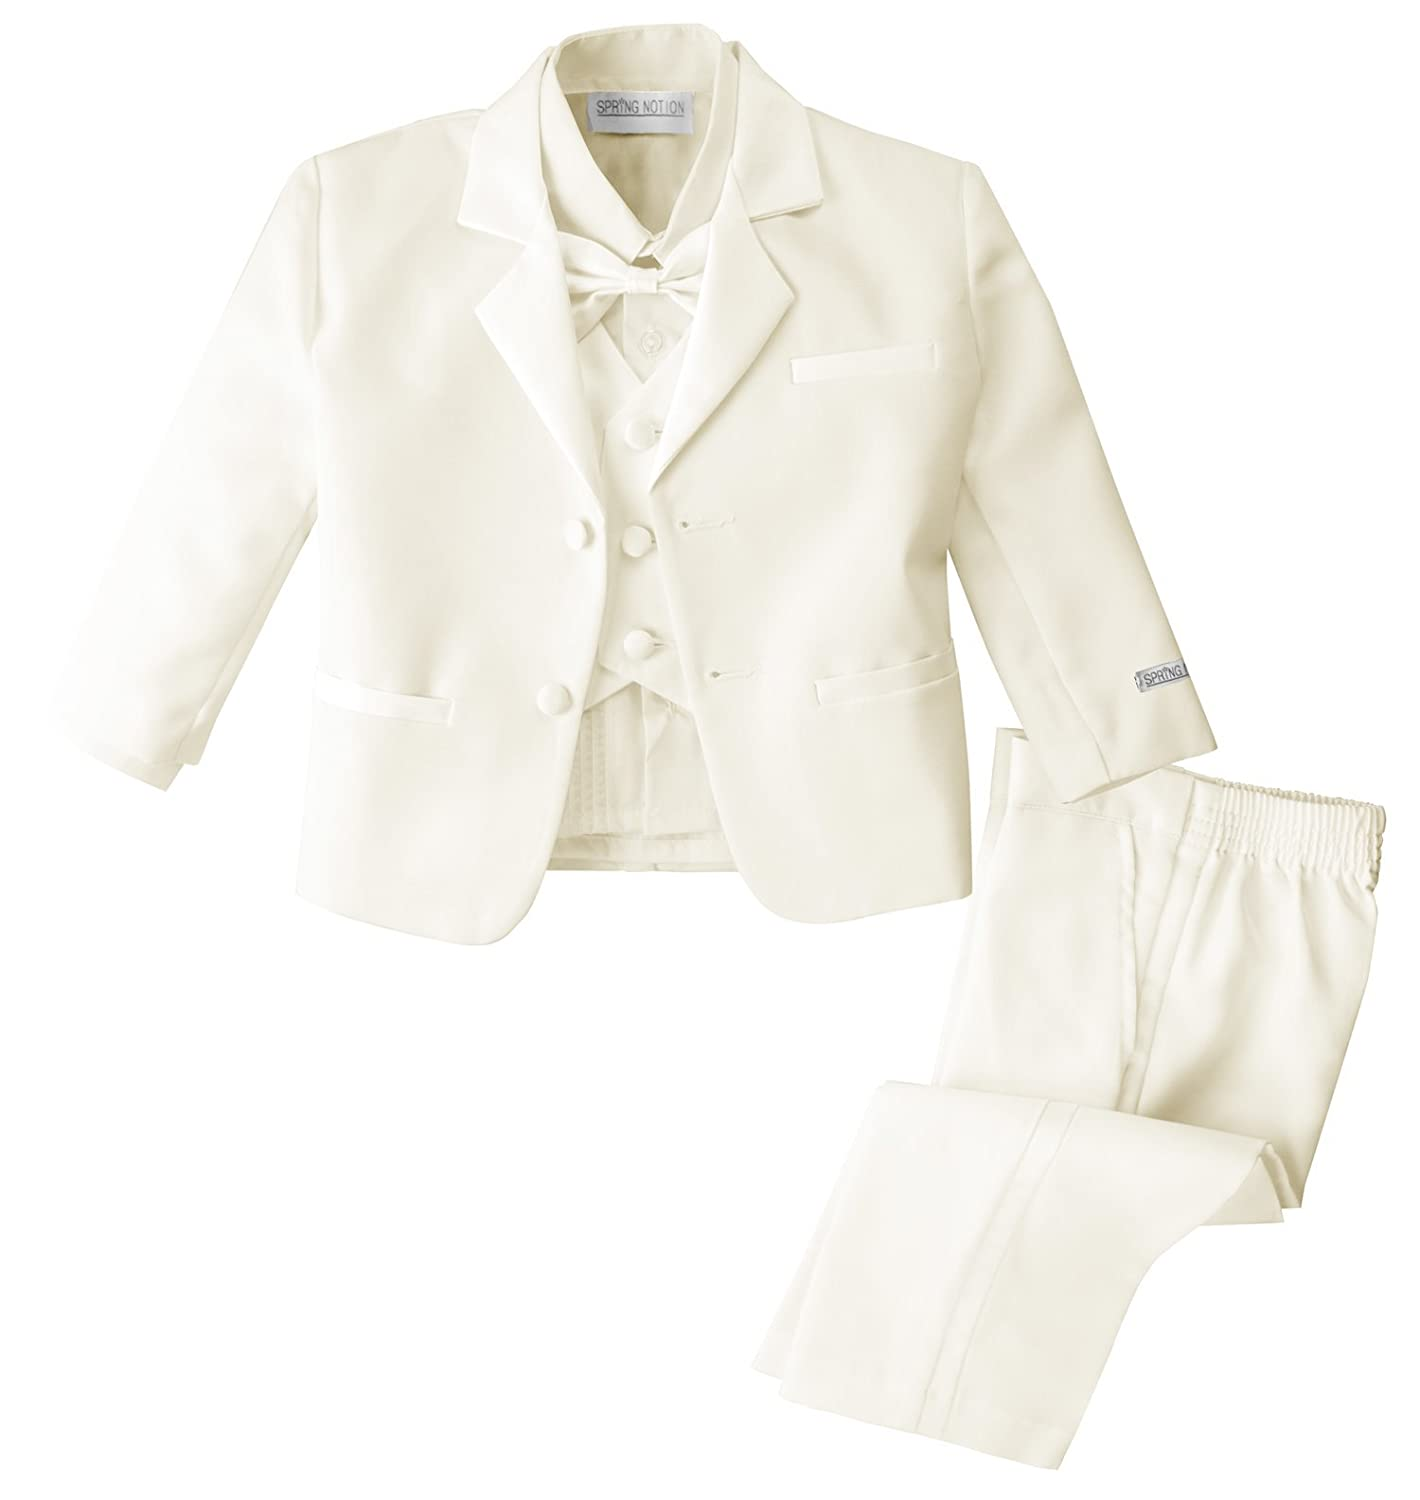 Spring Notion Baby Boys' Ivory Classic Fit Tuxedo Set, No Tail ERF202-SNB-202.IV